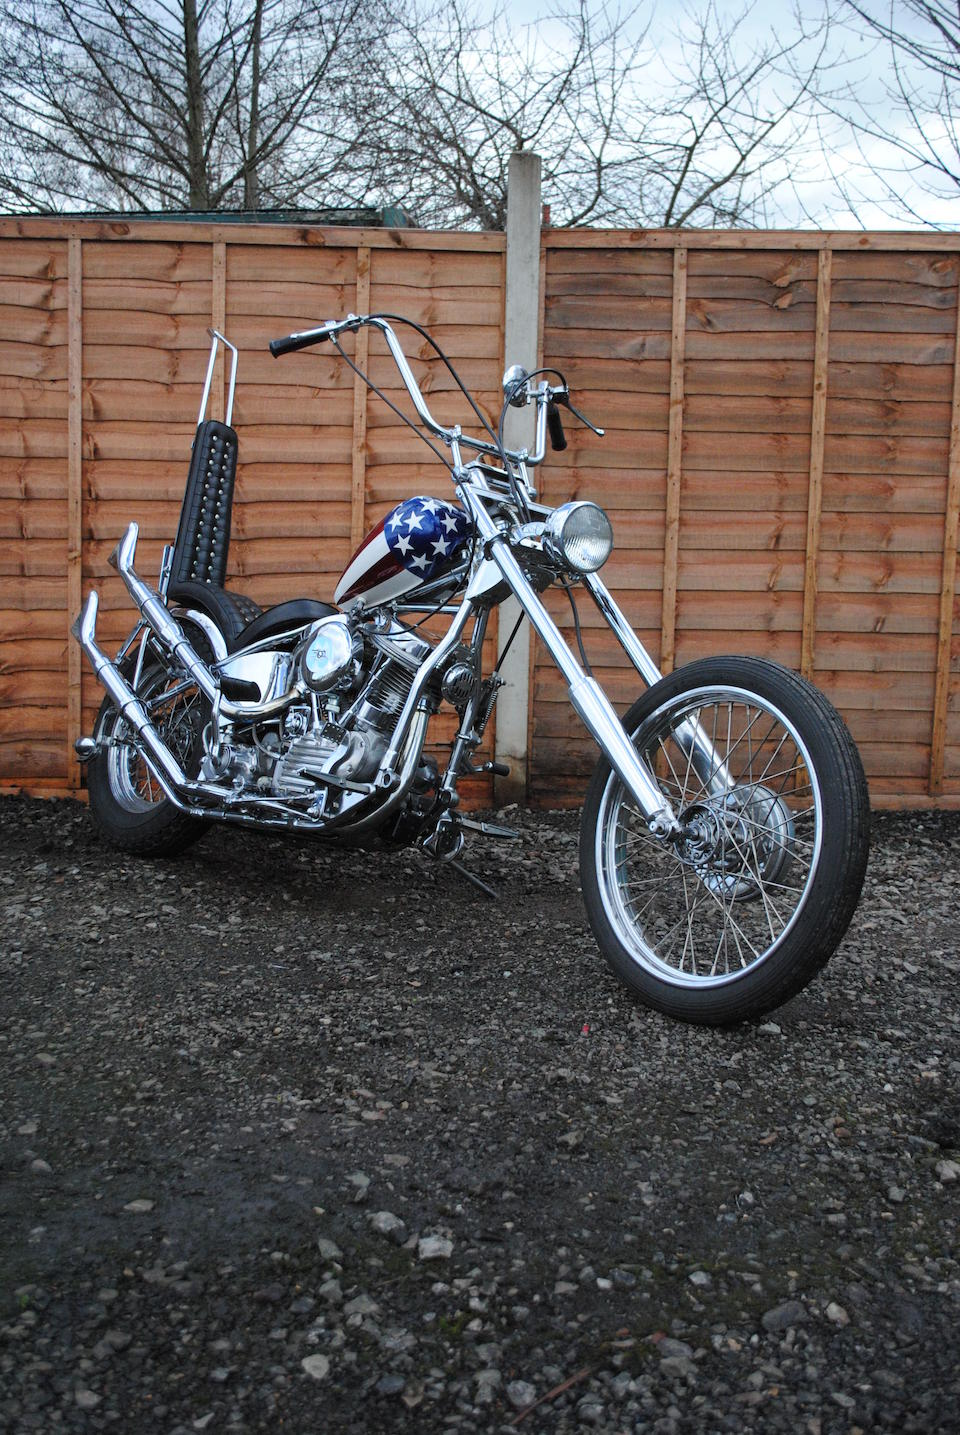 Property of a deceased's estate,1952 Harley Davidson 1,200cc EL 'Captain America Replica' Frame no. 52EL1466 Engine no. 52EL2466